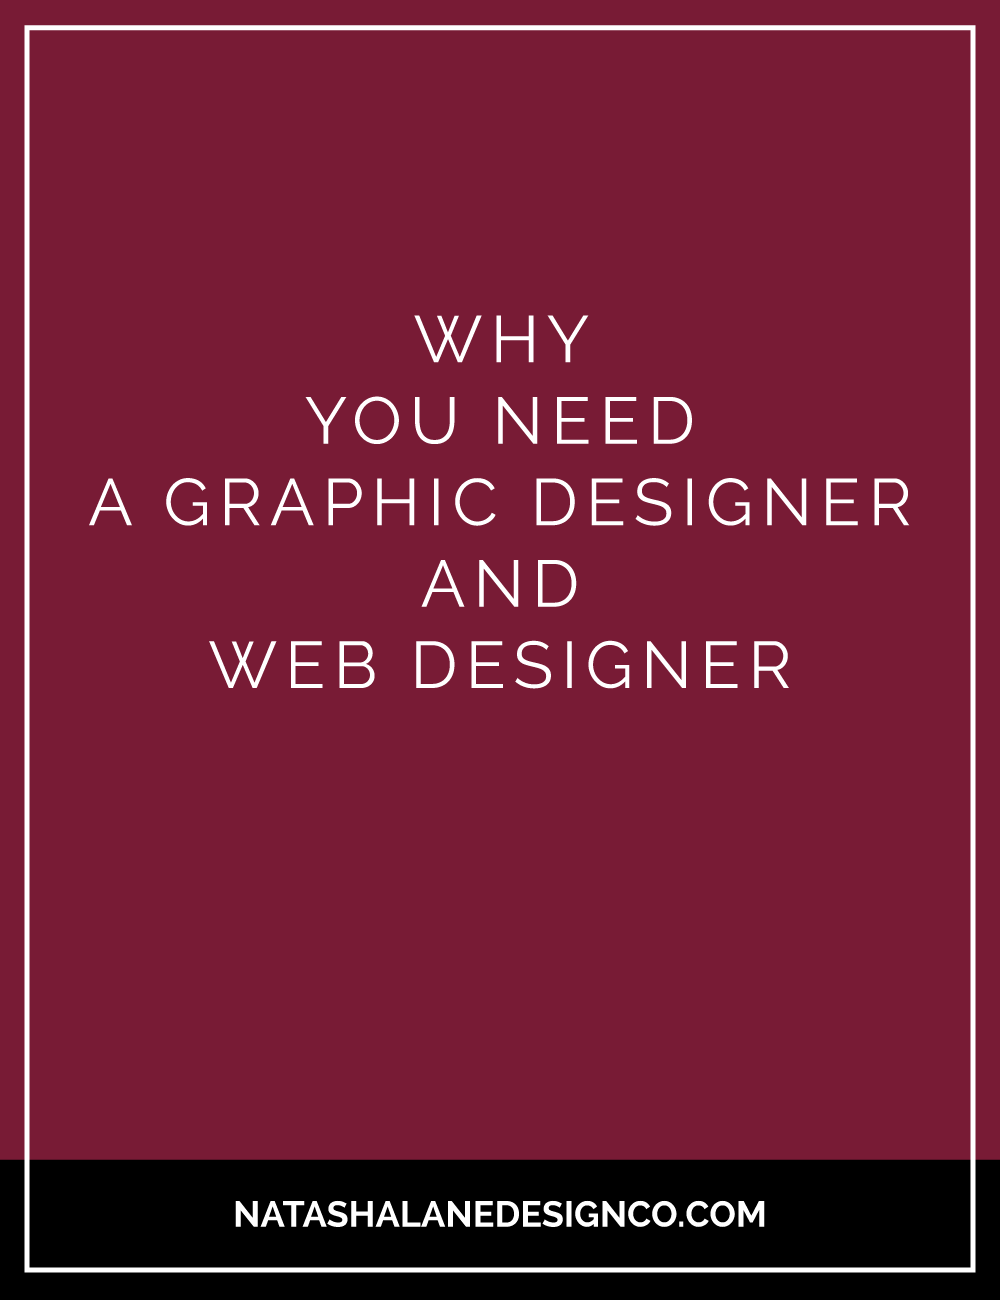 Blog Title- Why you need a graphic designer and web designer